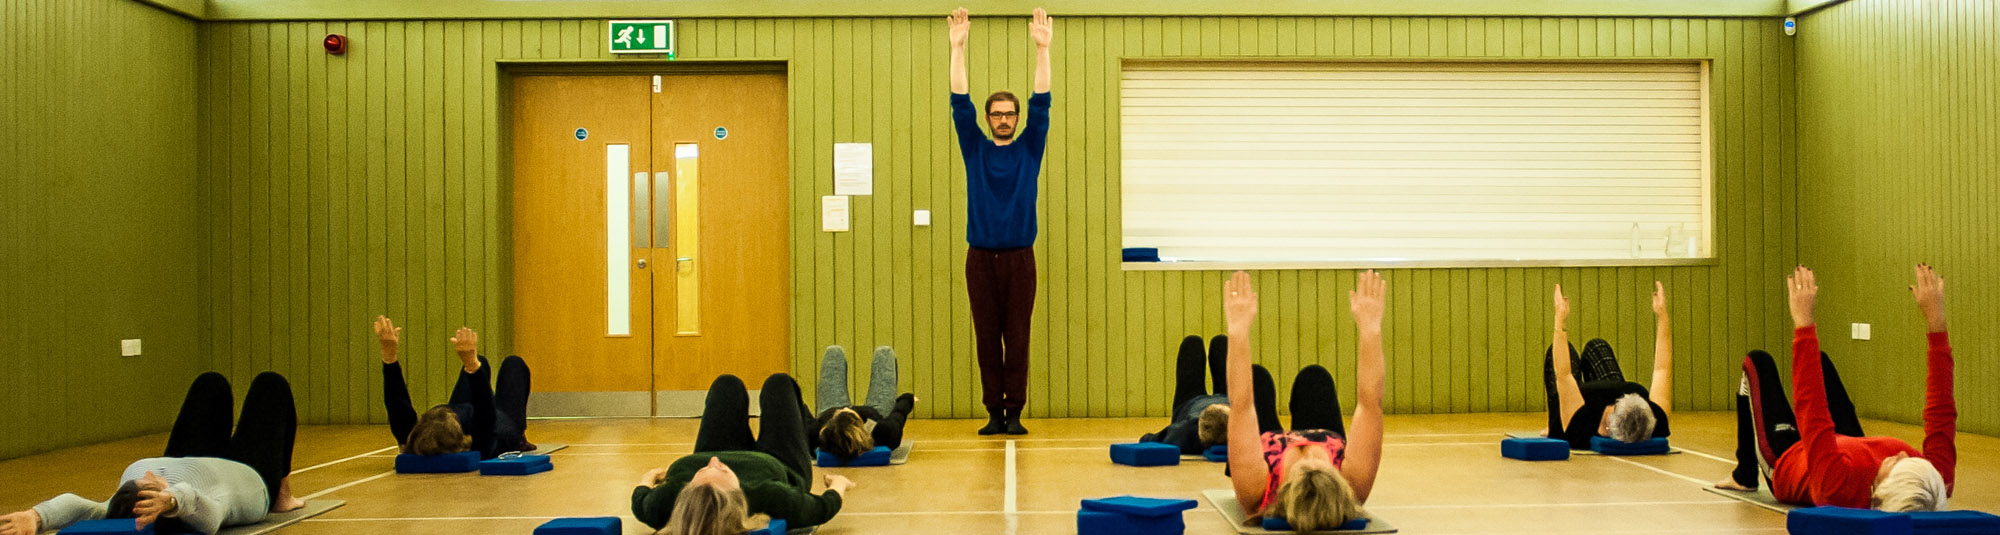 Julian Askham Pilates at Hickling Barn, Norfolk